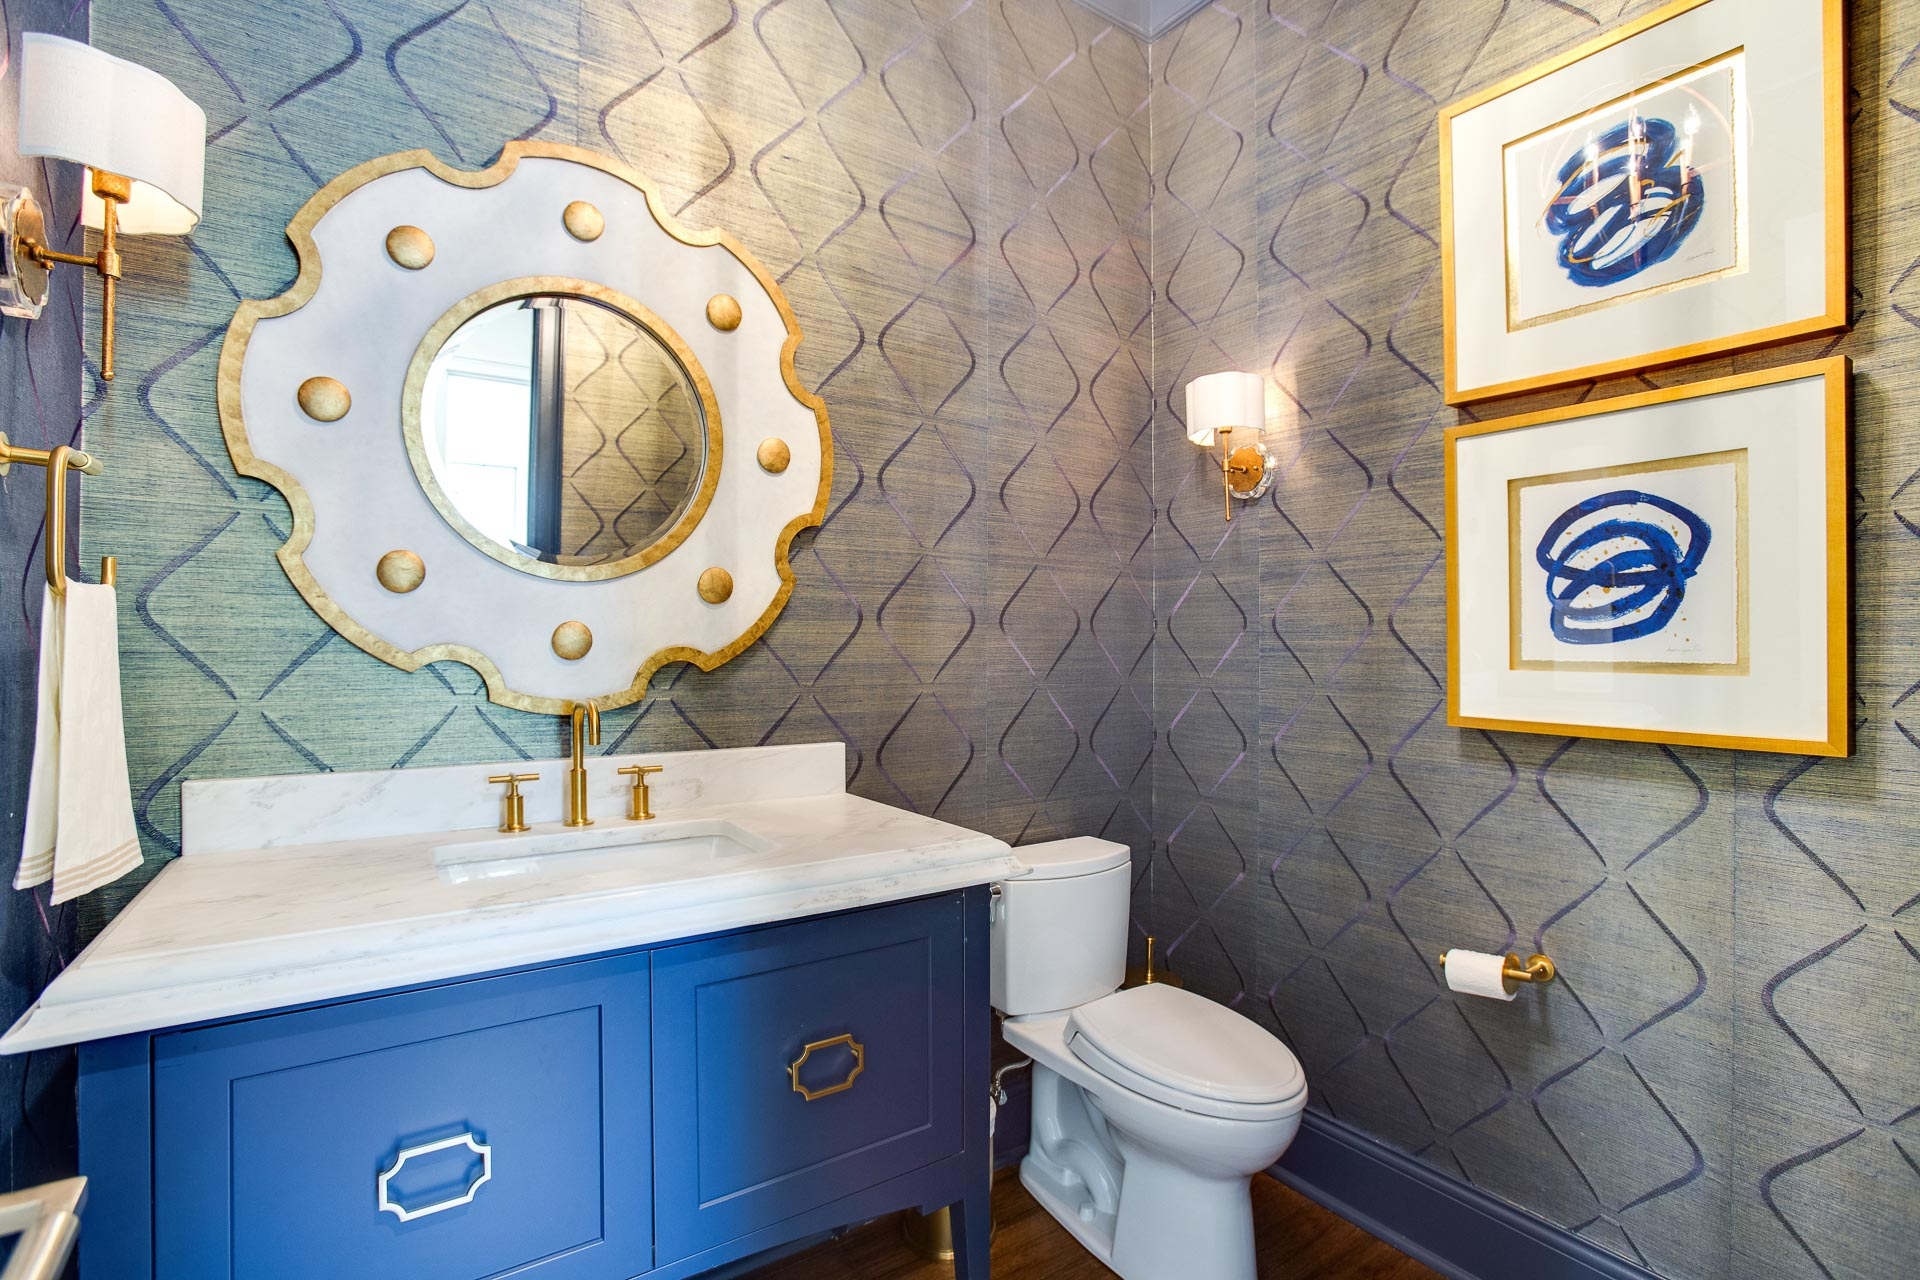 Modern Bathroom Remodeling Design Ideas For A Contemporary Look